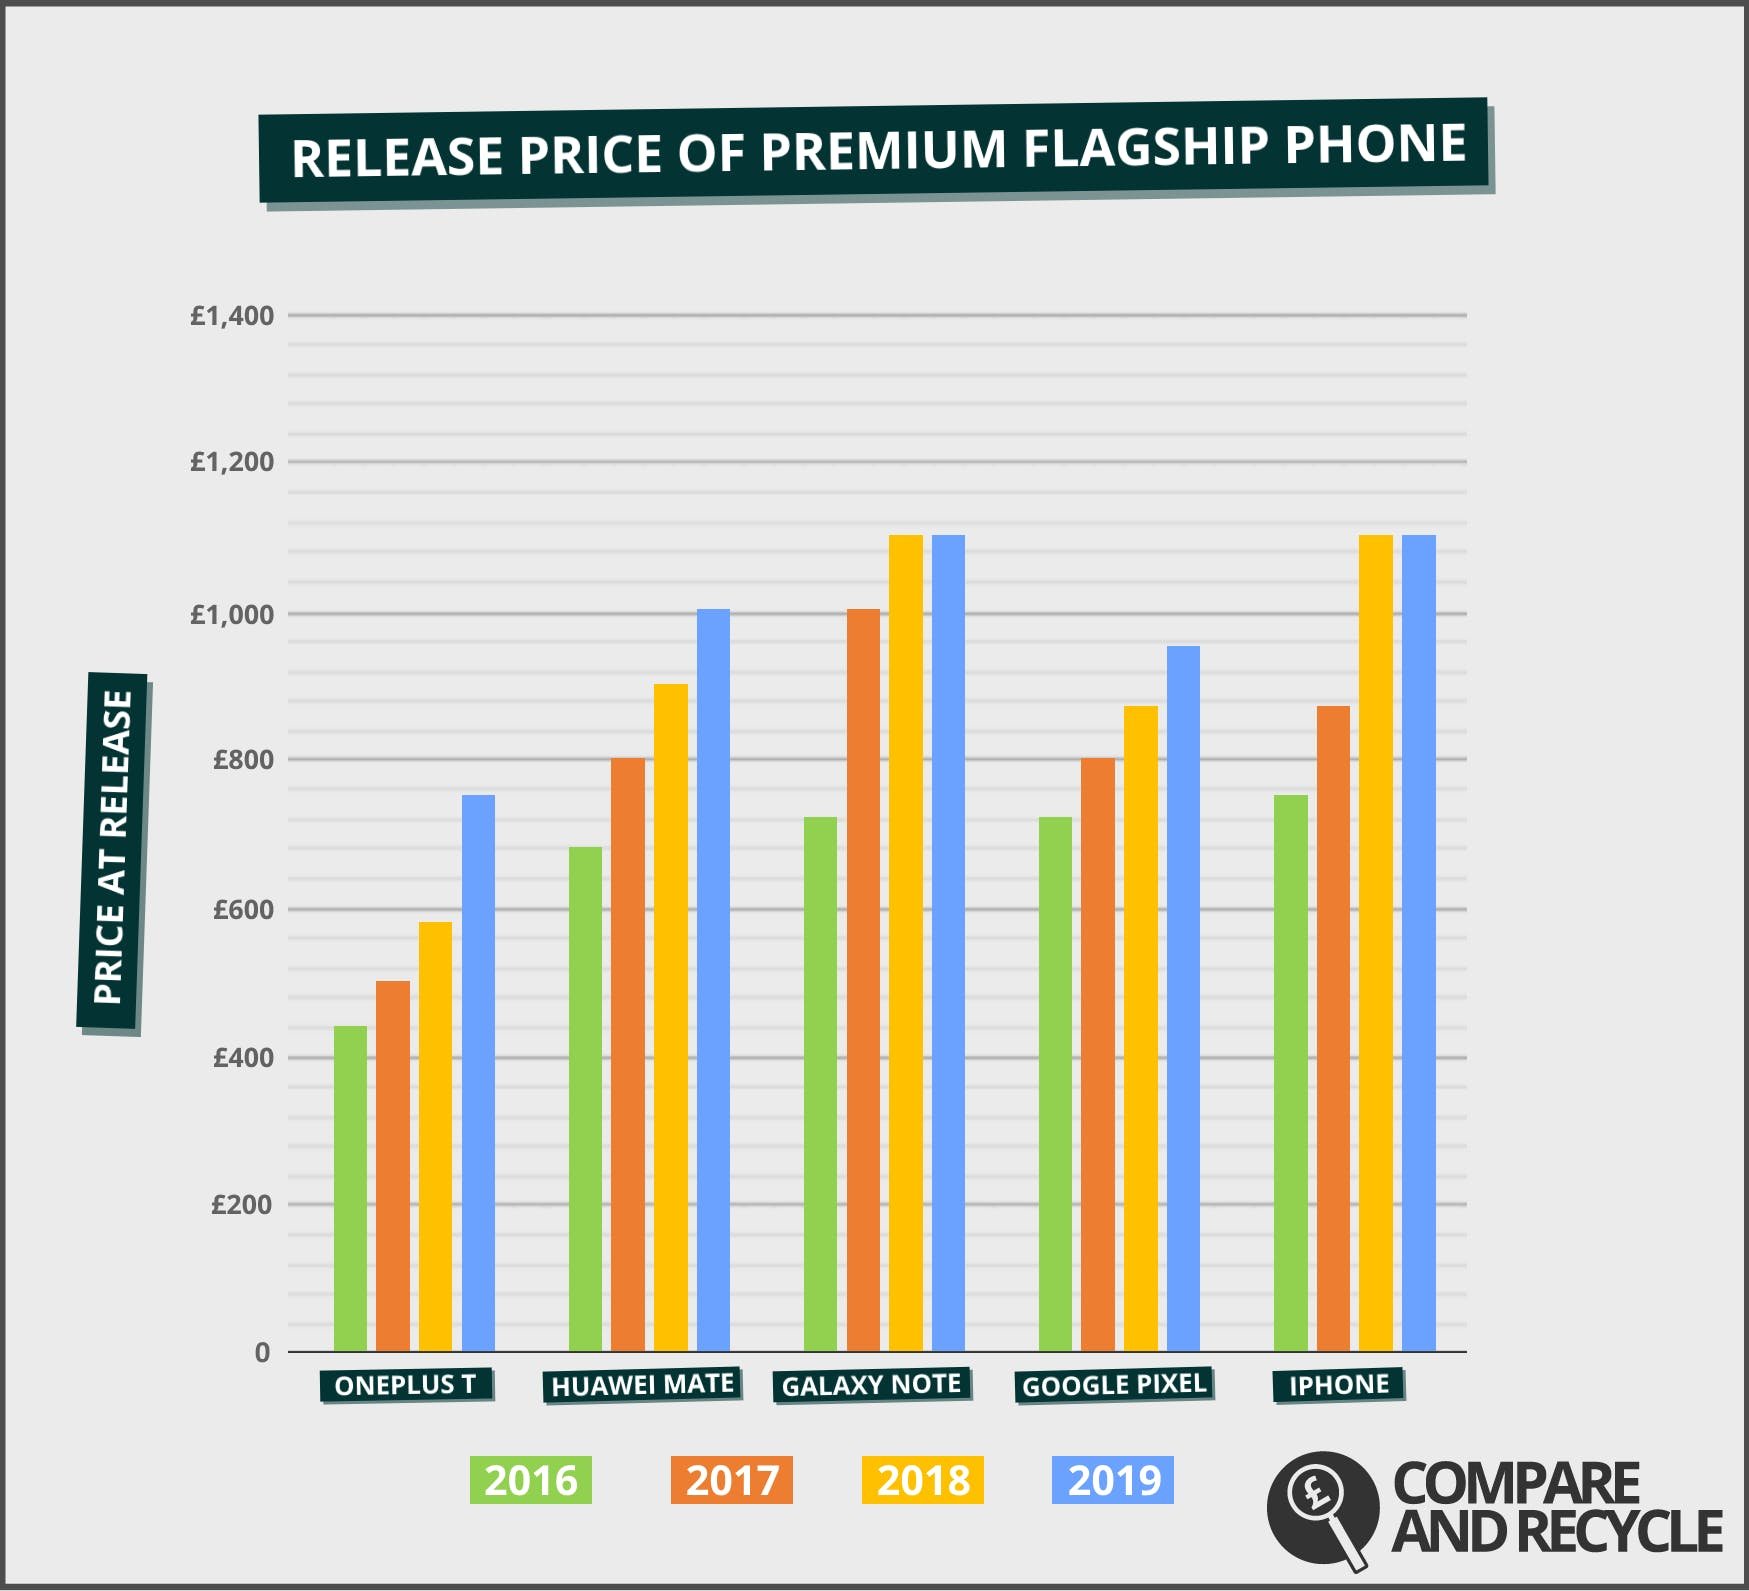 """This graph illustrates 2019 prices as estimates based on industry speculation and data from the past three years. A """"premium flagship phone"""" is the model with the highest starting price at the time of its release by the manufacturer during the second half of the year, between 2016-2019."""